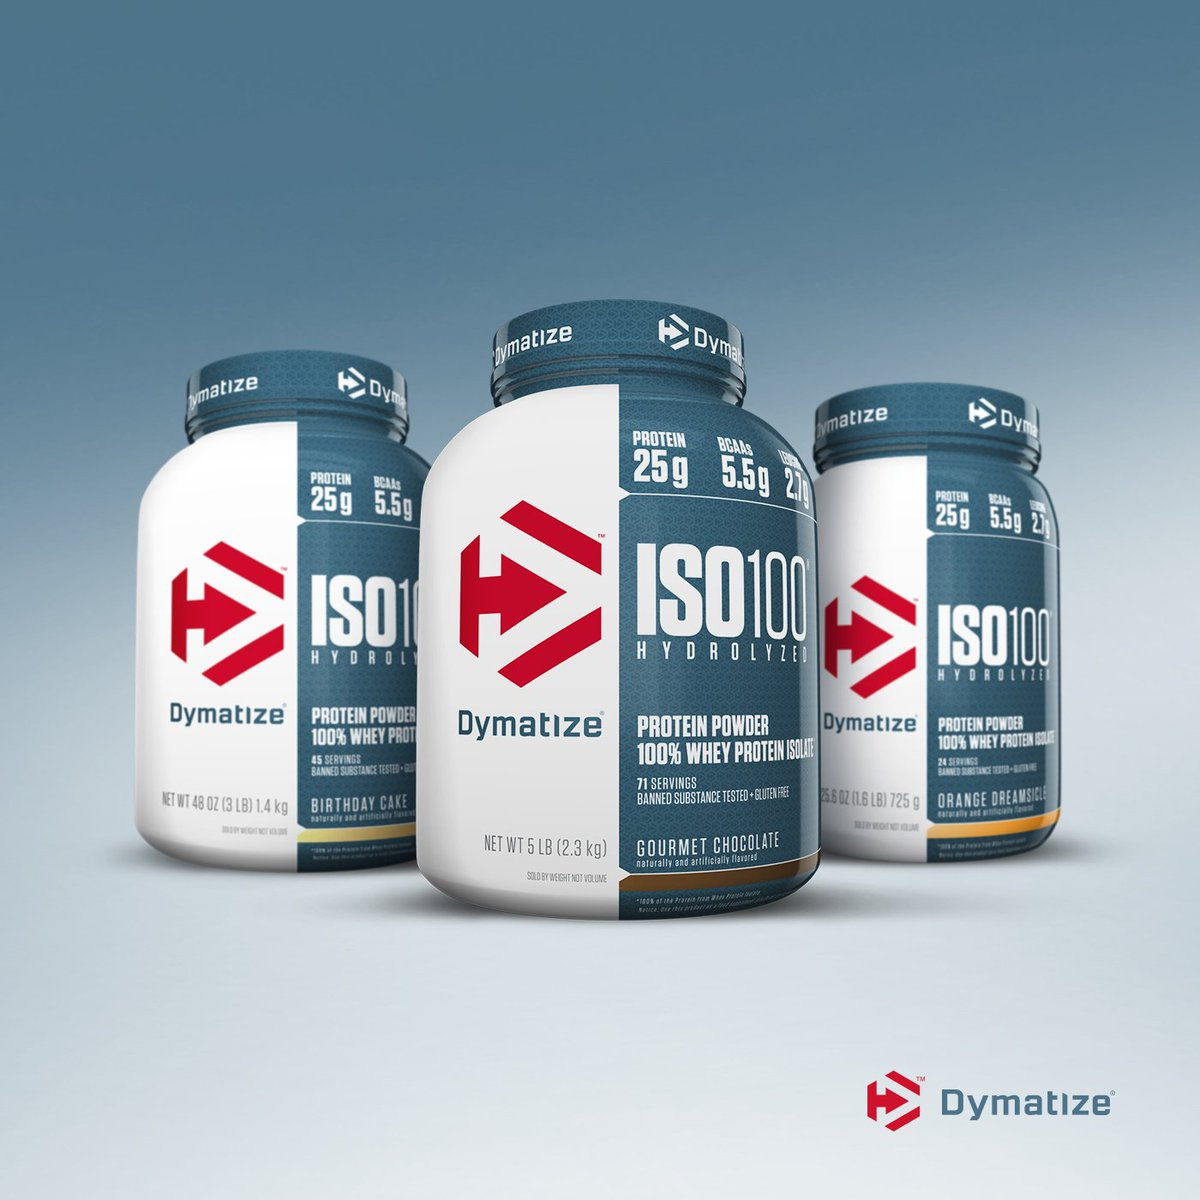 Dymatize On Twitter Be One Of The 1st To Get Iso 100 In New